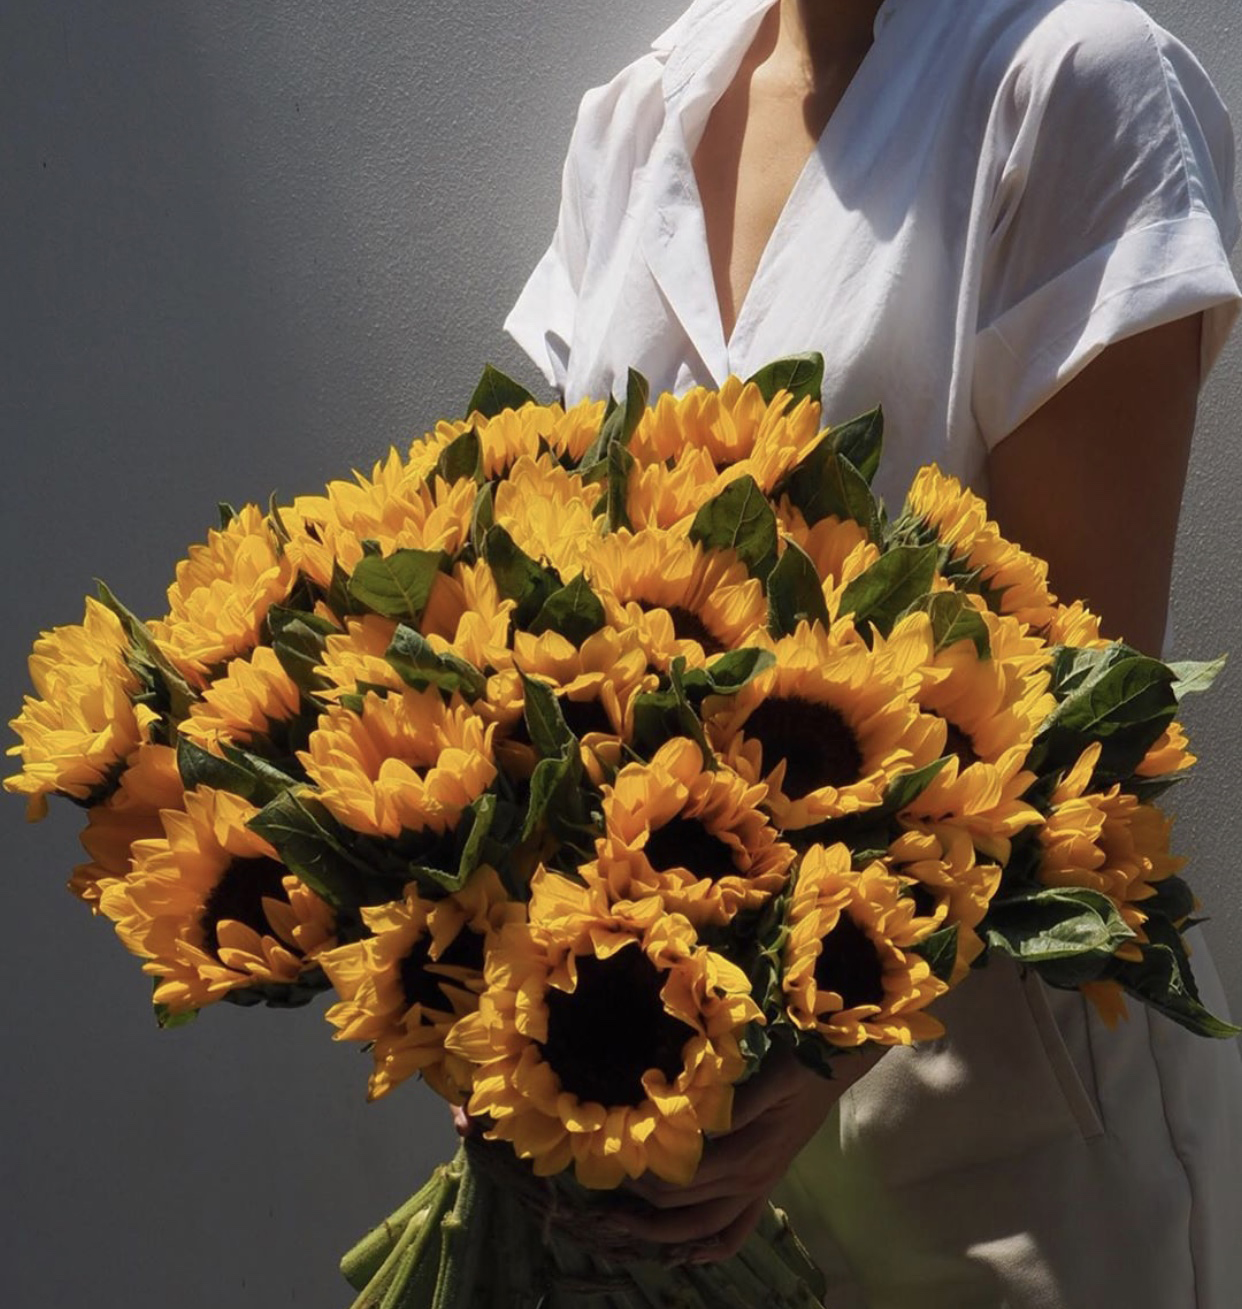 You're my Sunflower